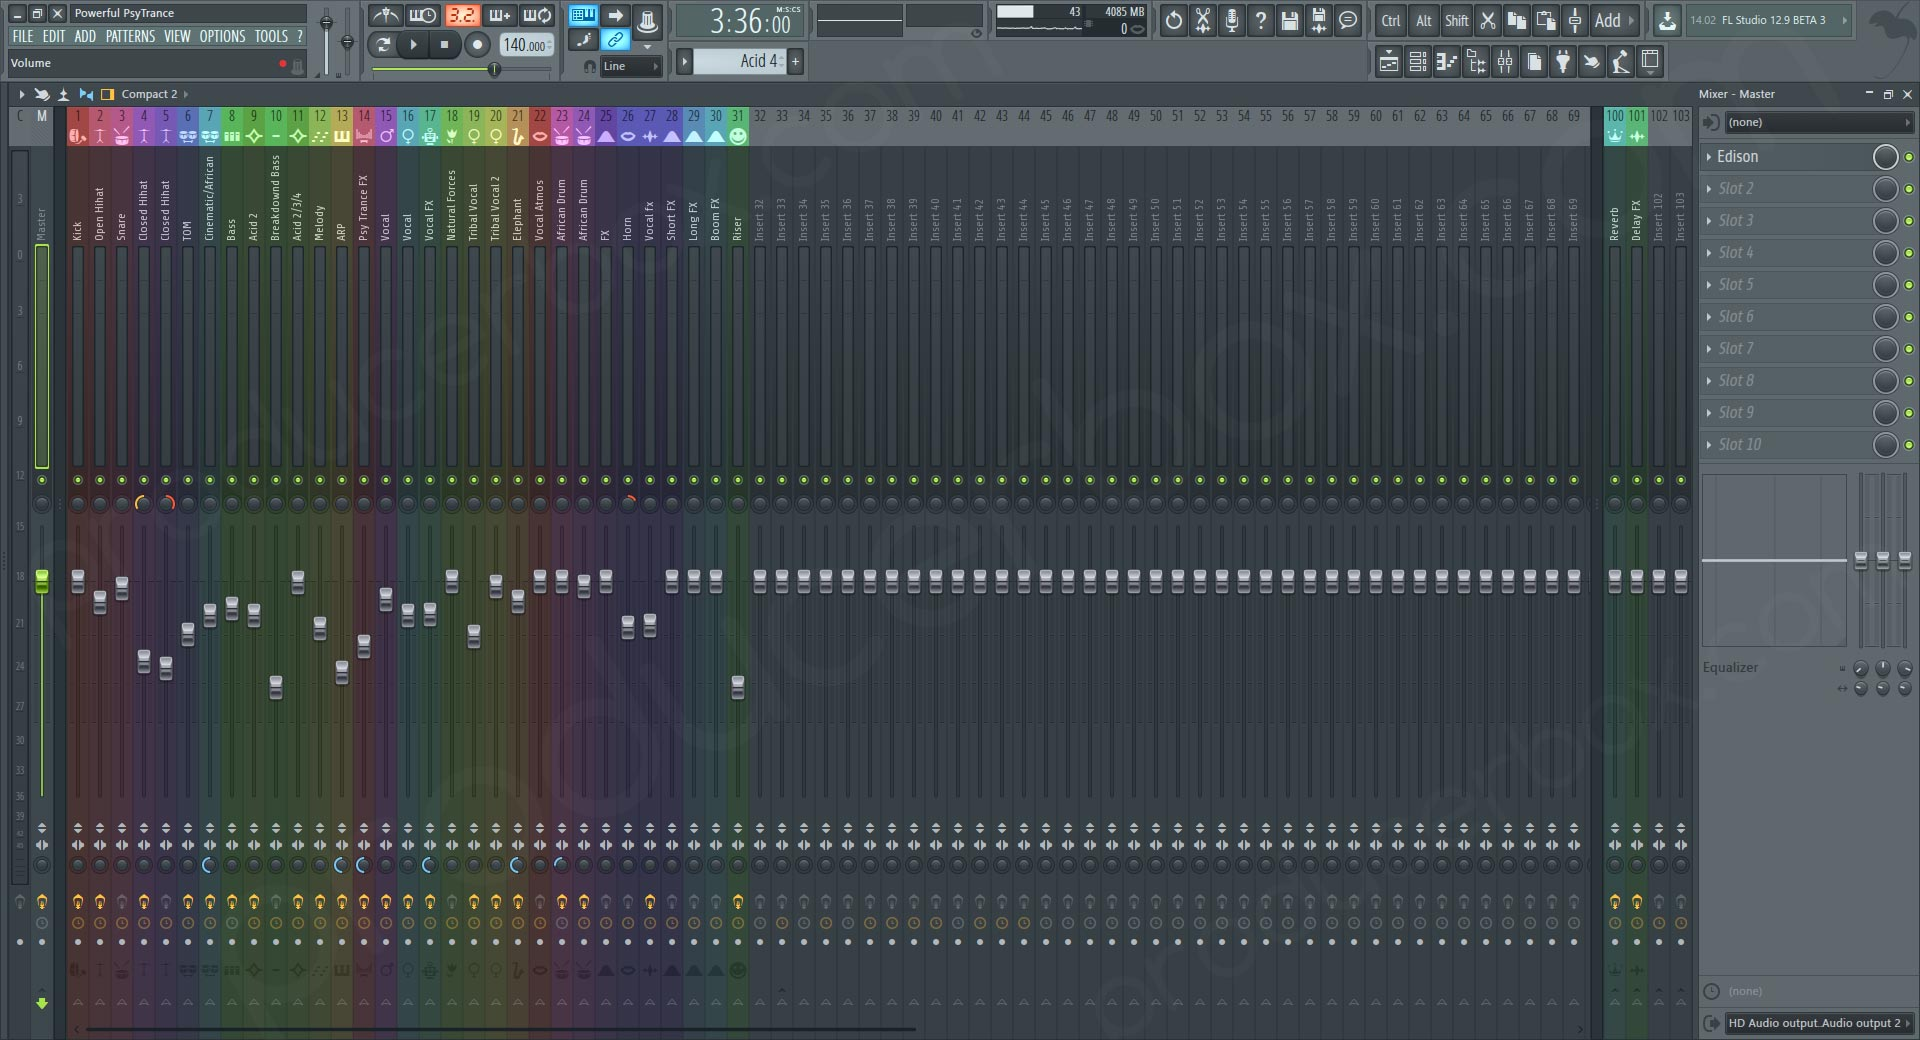 fl studio 12 beta 3